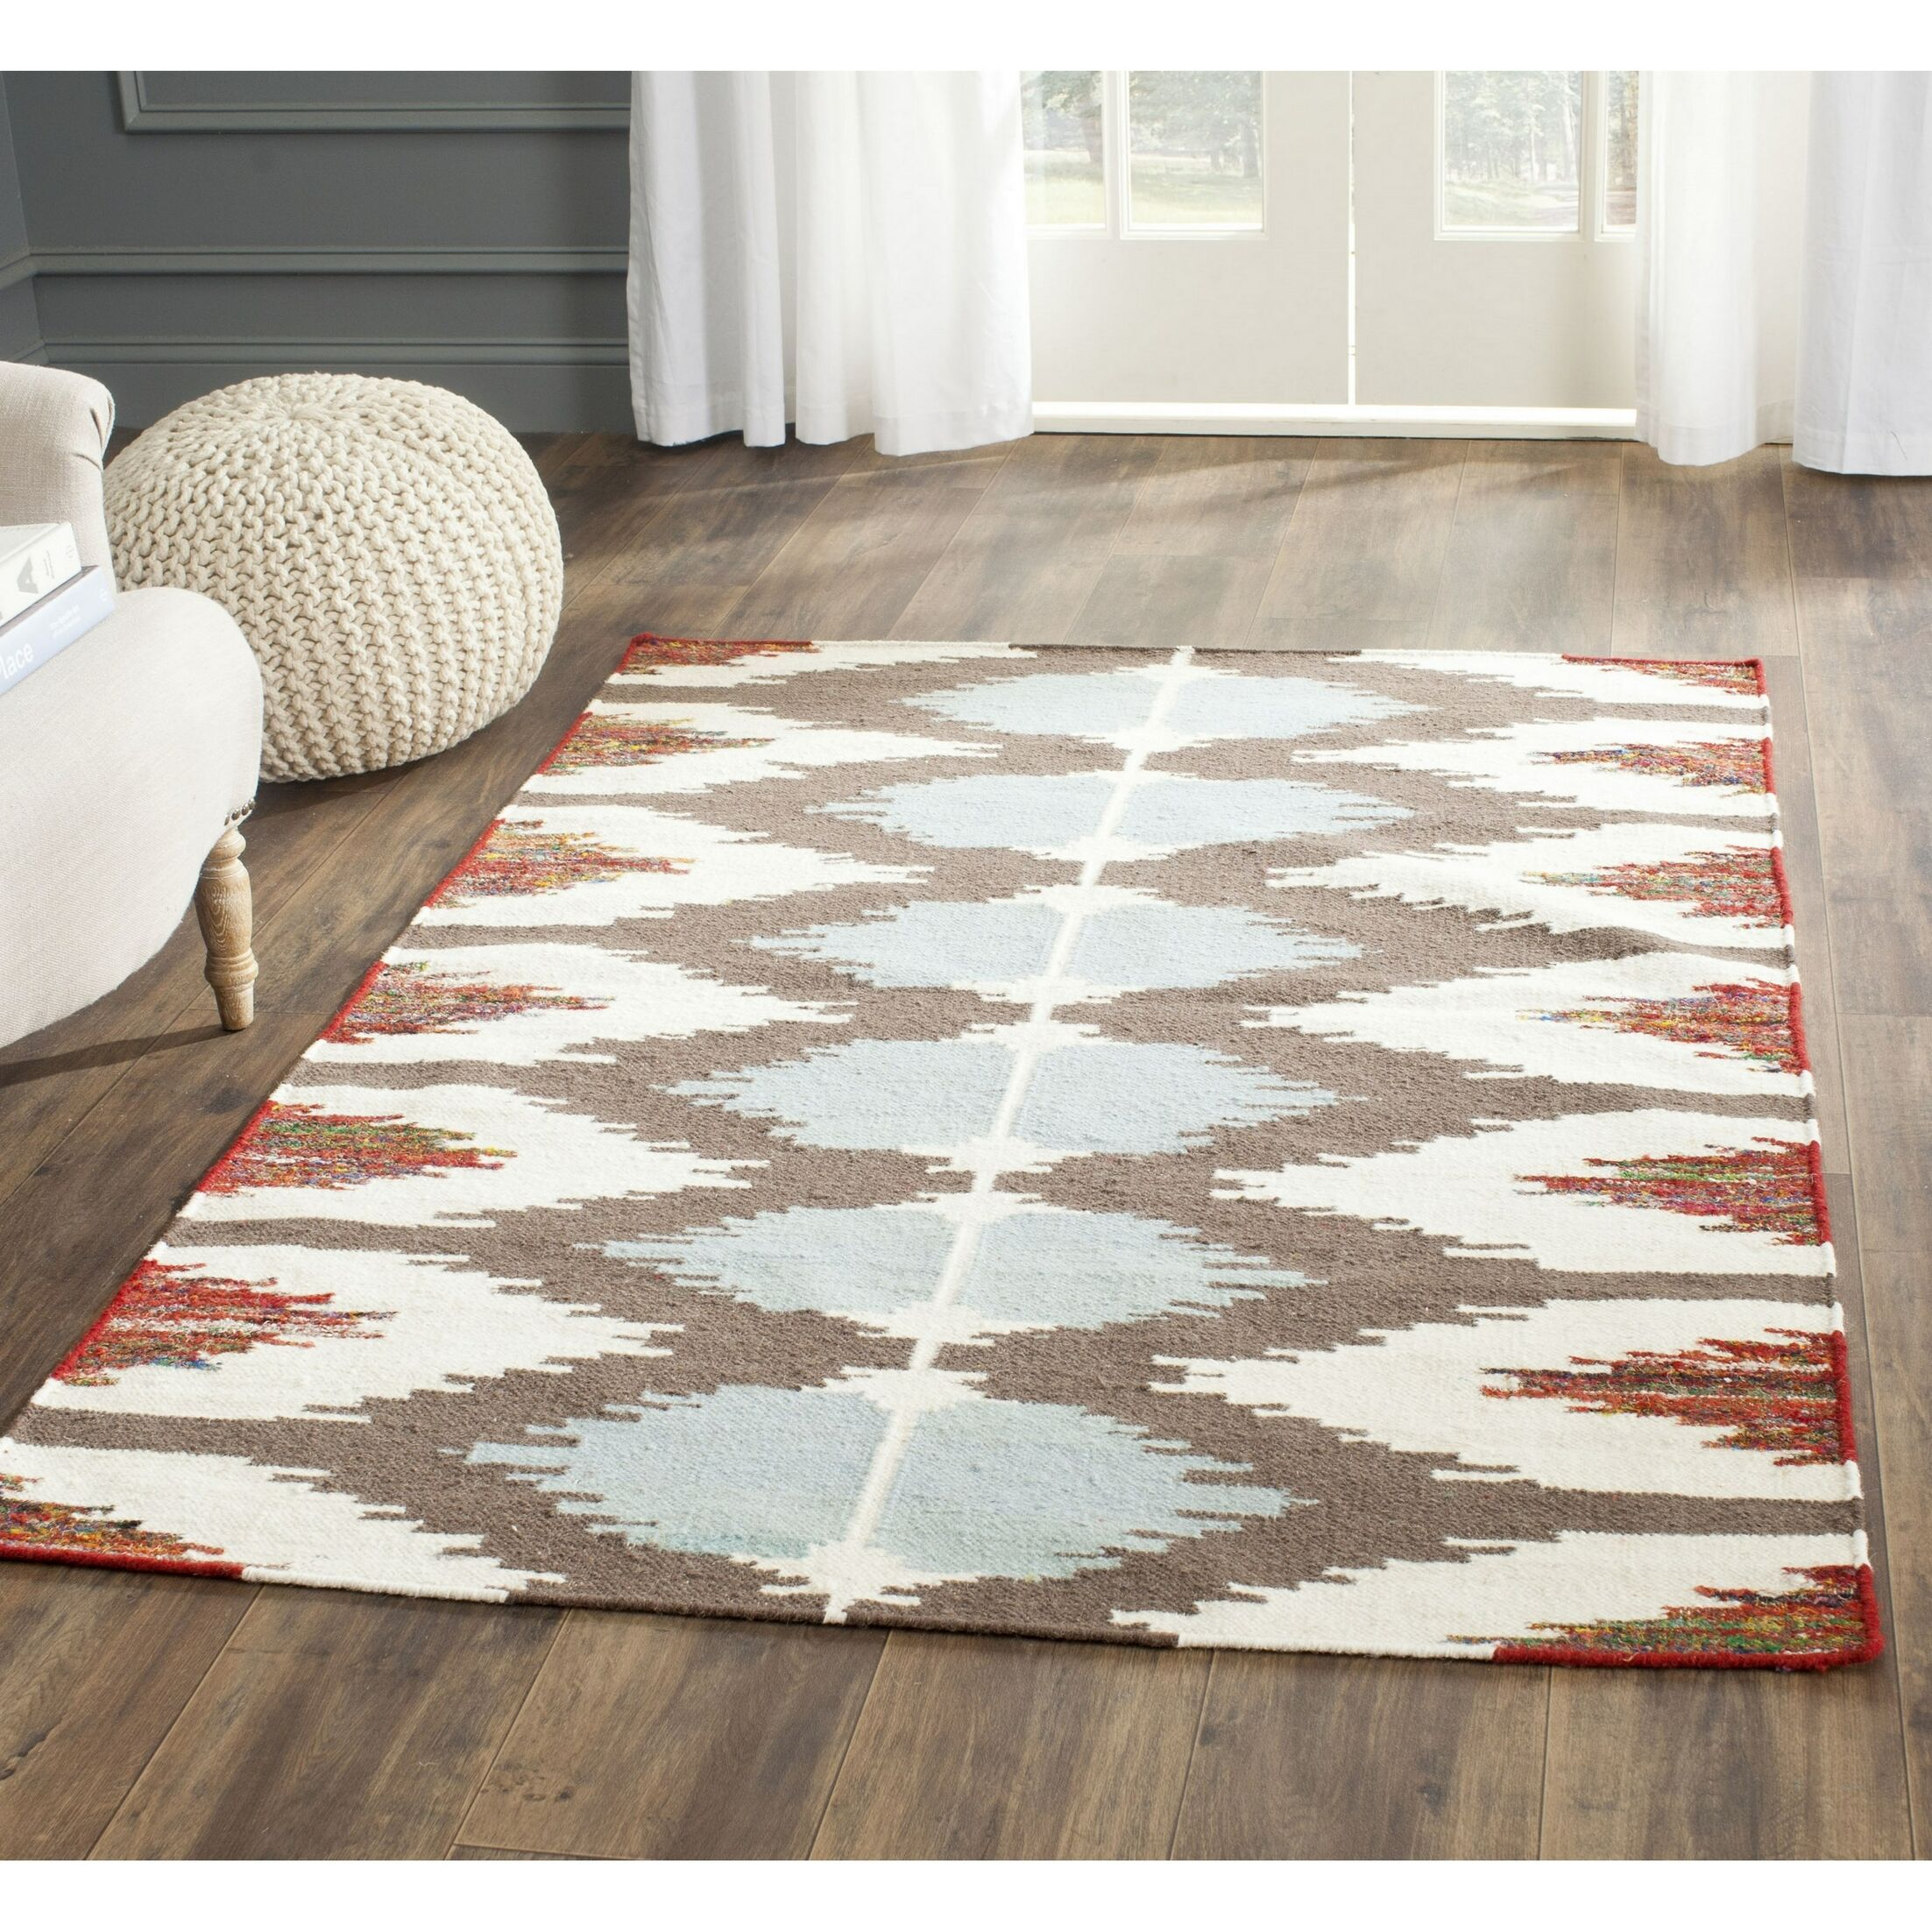 Dhurries Cotton Area Rug Rug Size: Rectangle 5' x 8'